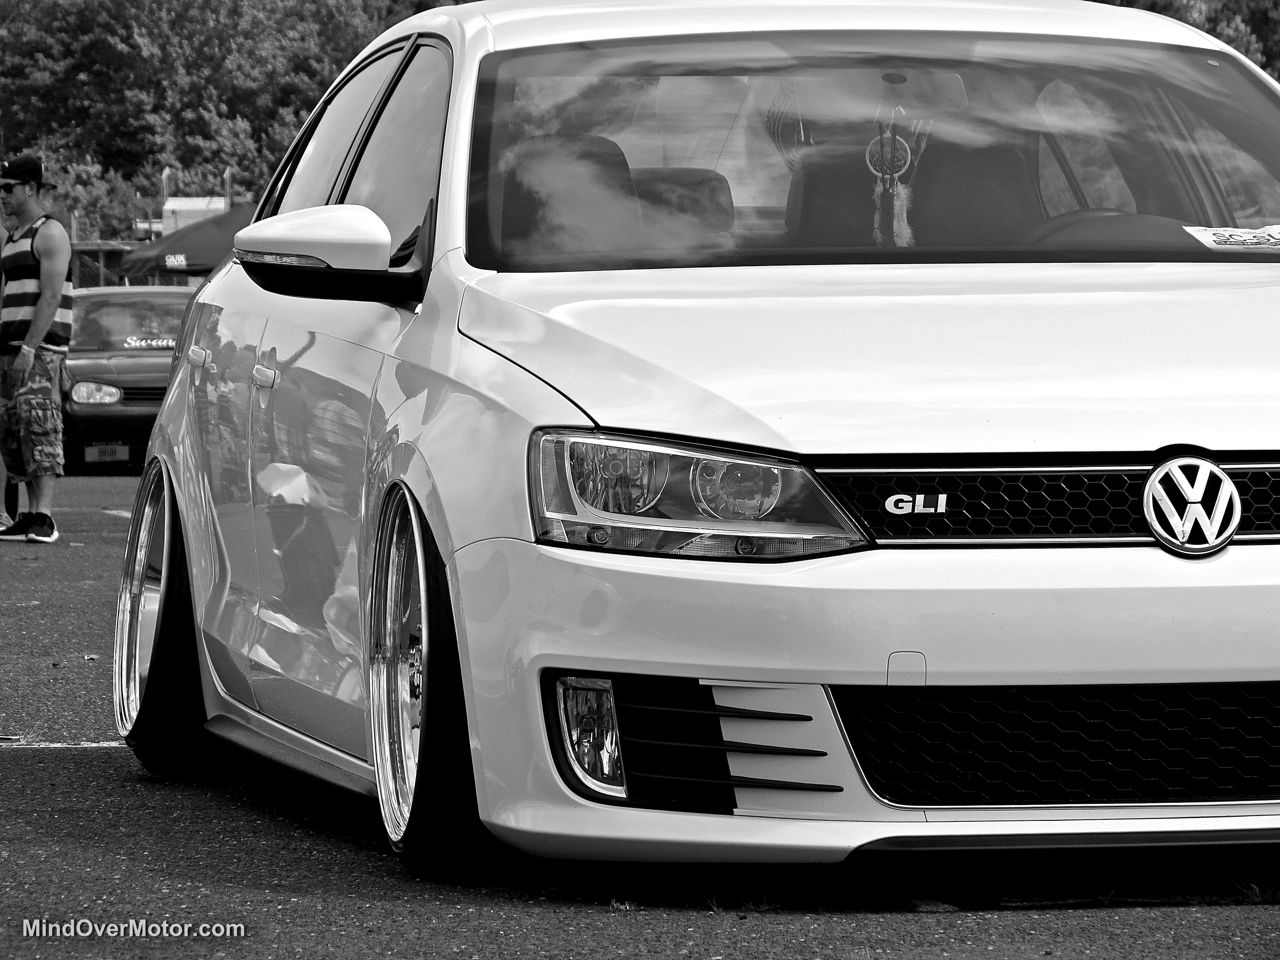 Waterfest 20 VW GLI Slammed